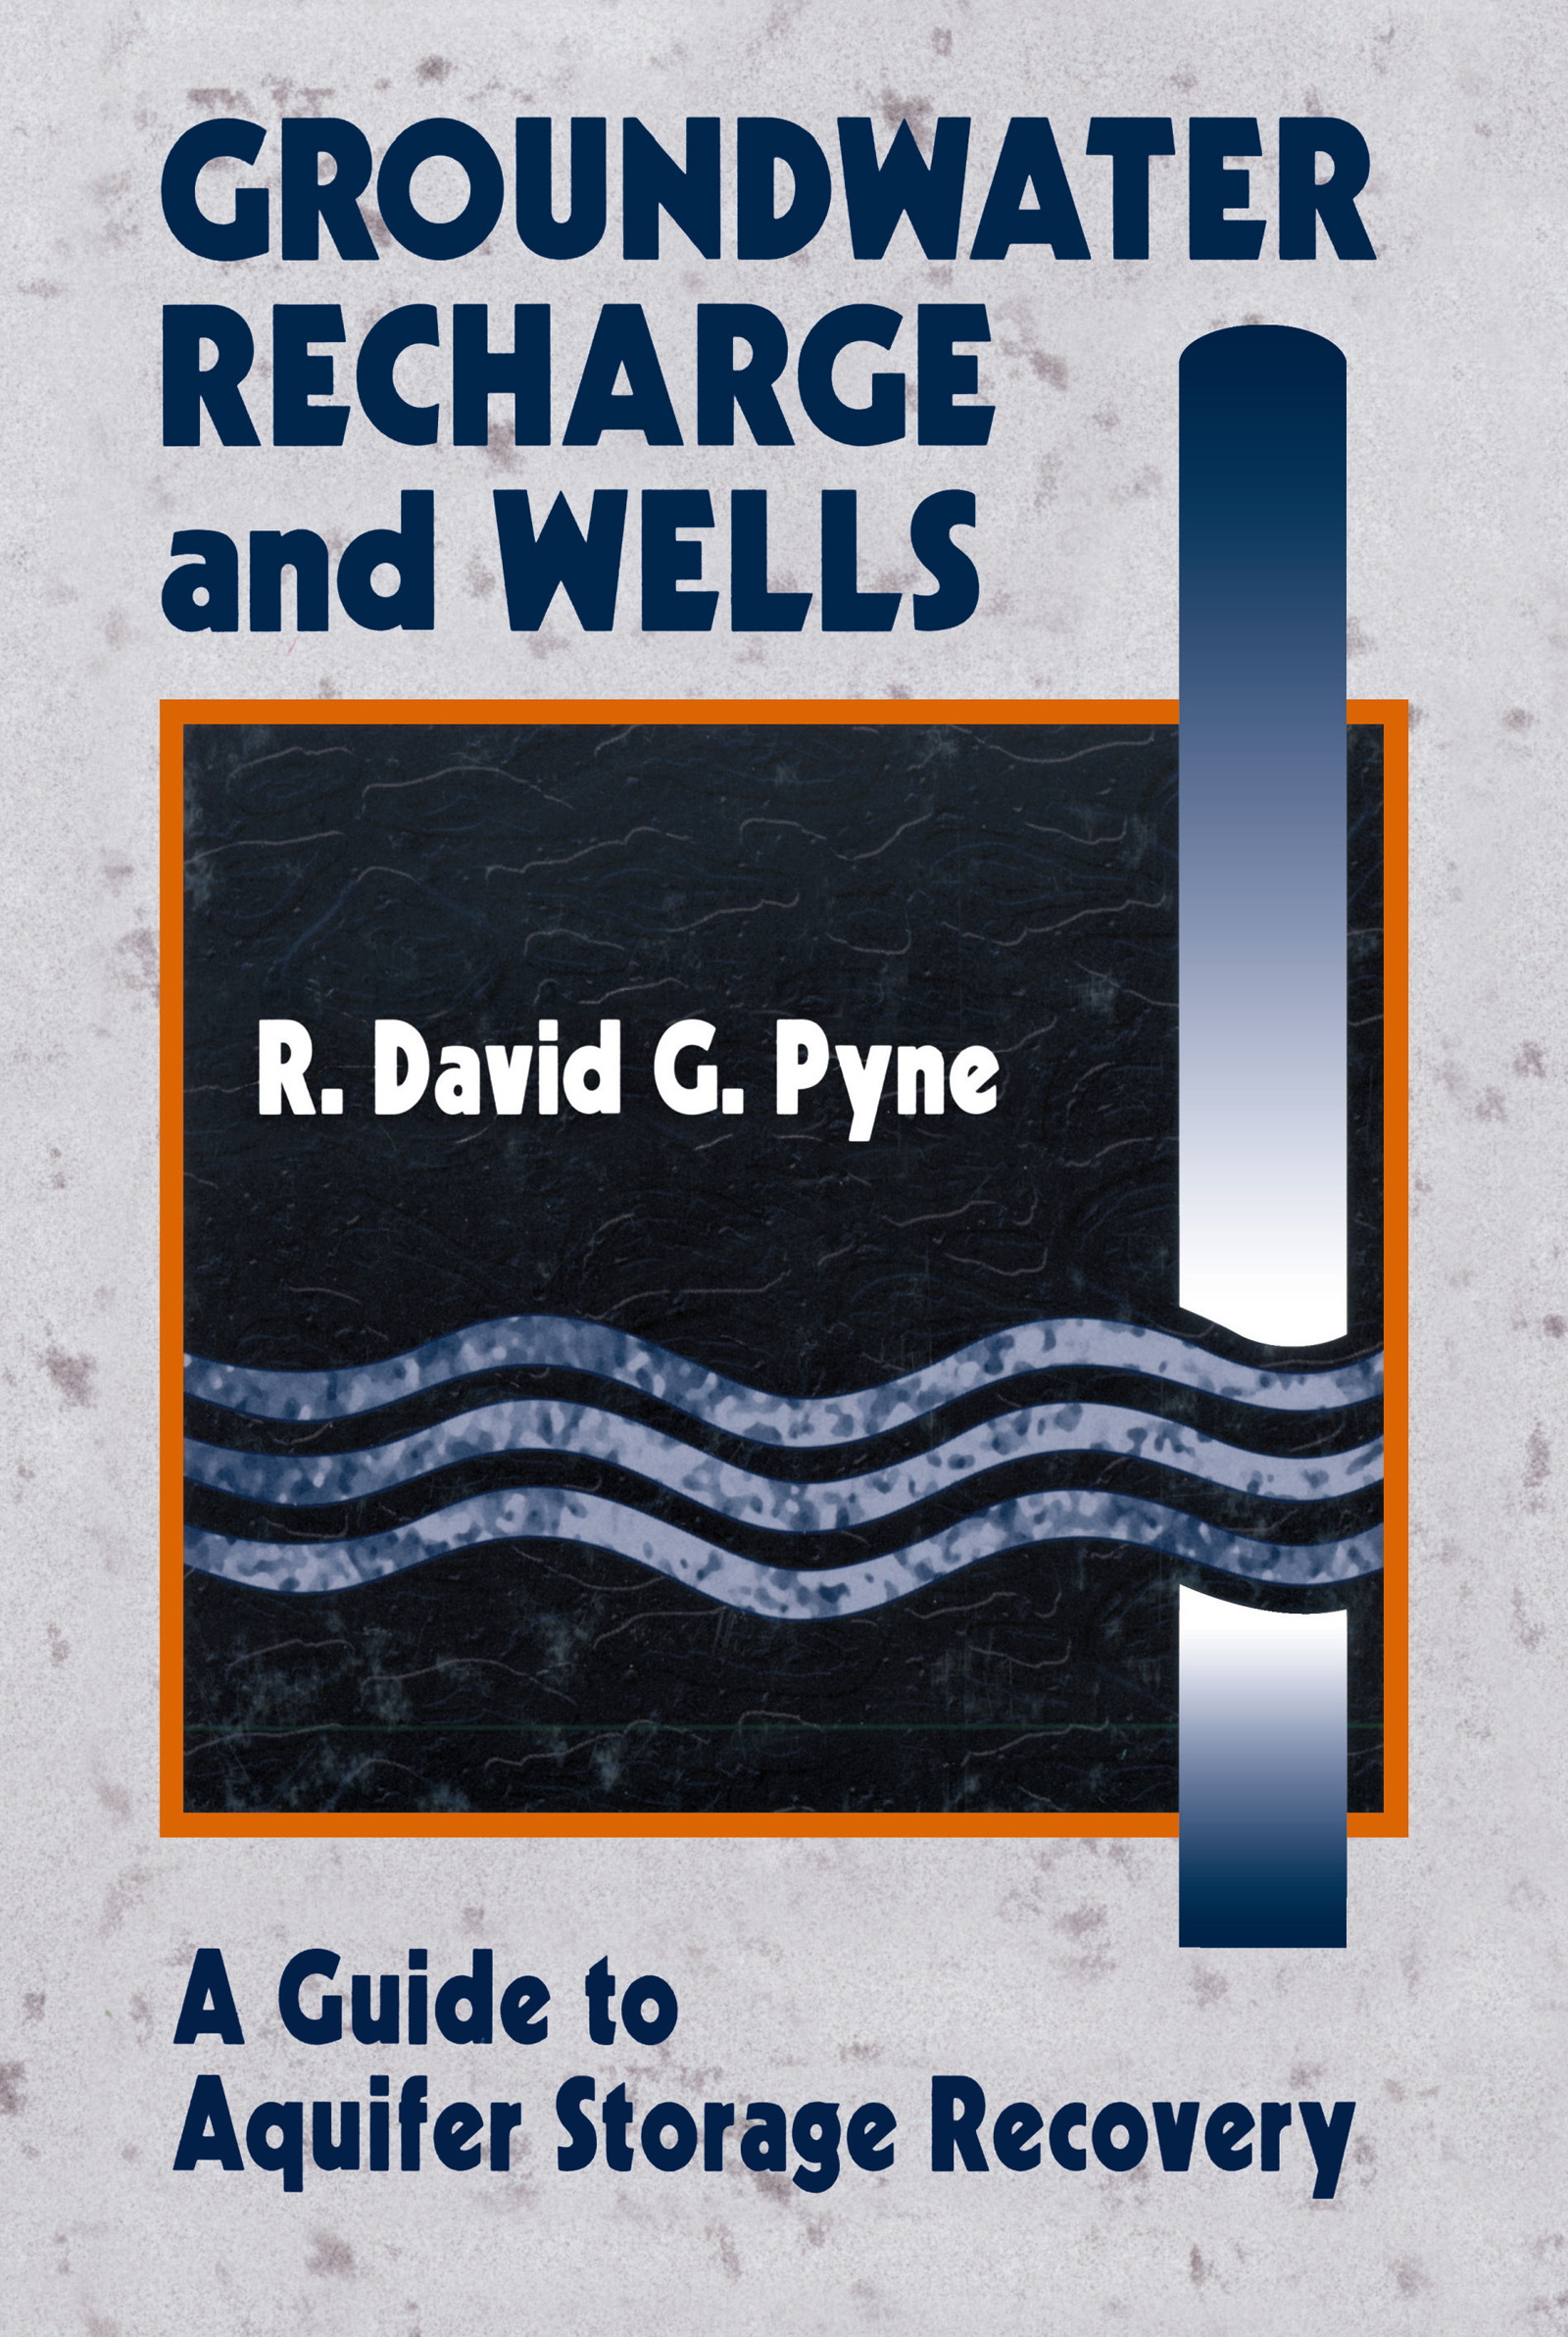 Groundwater Recharge and Wells